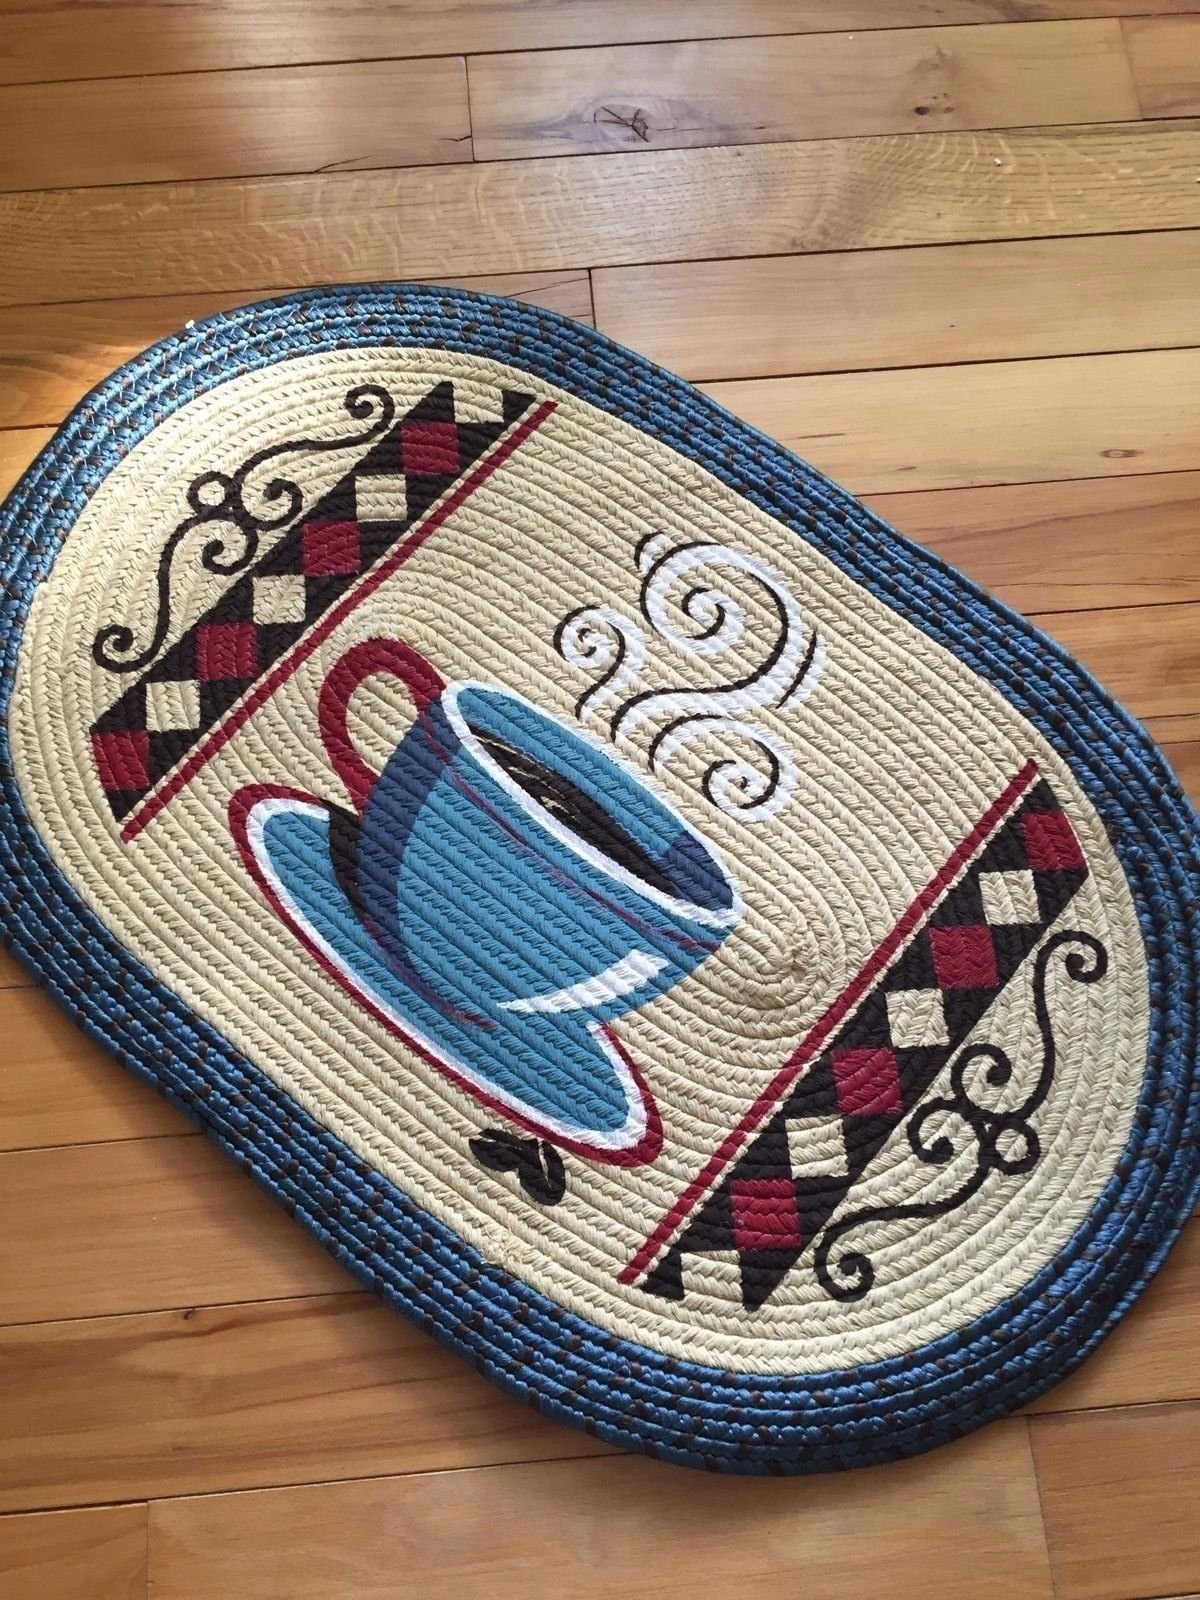 Oval Coffee Mug Design Braided Country Kitchen Rug